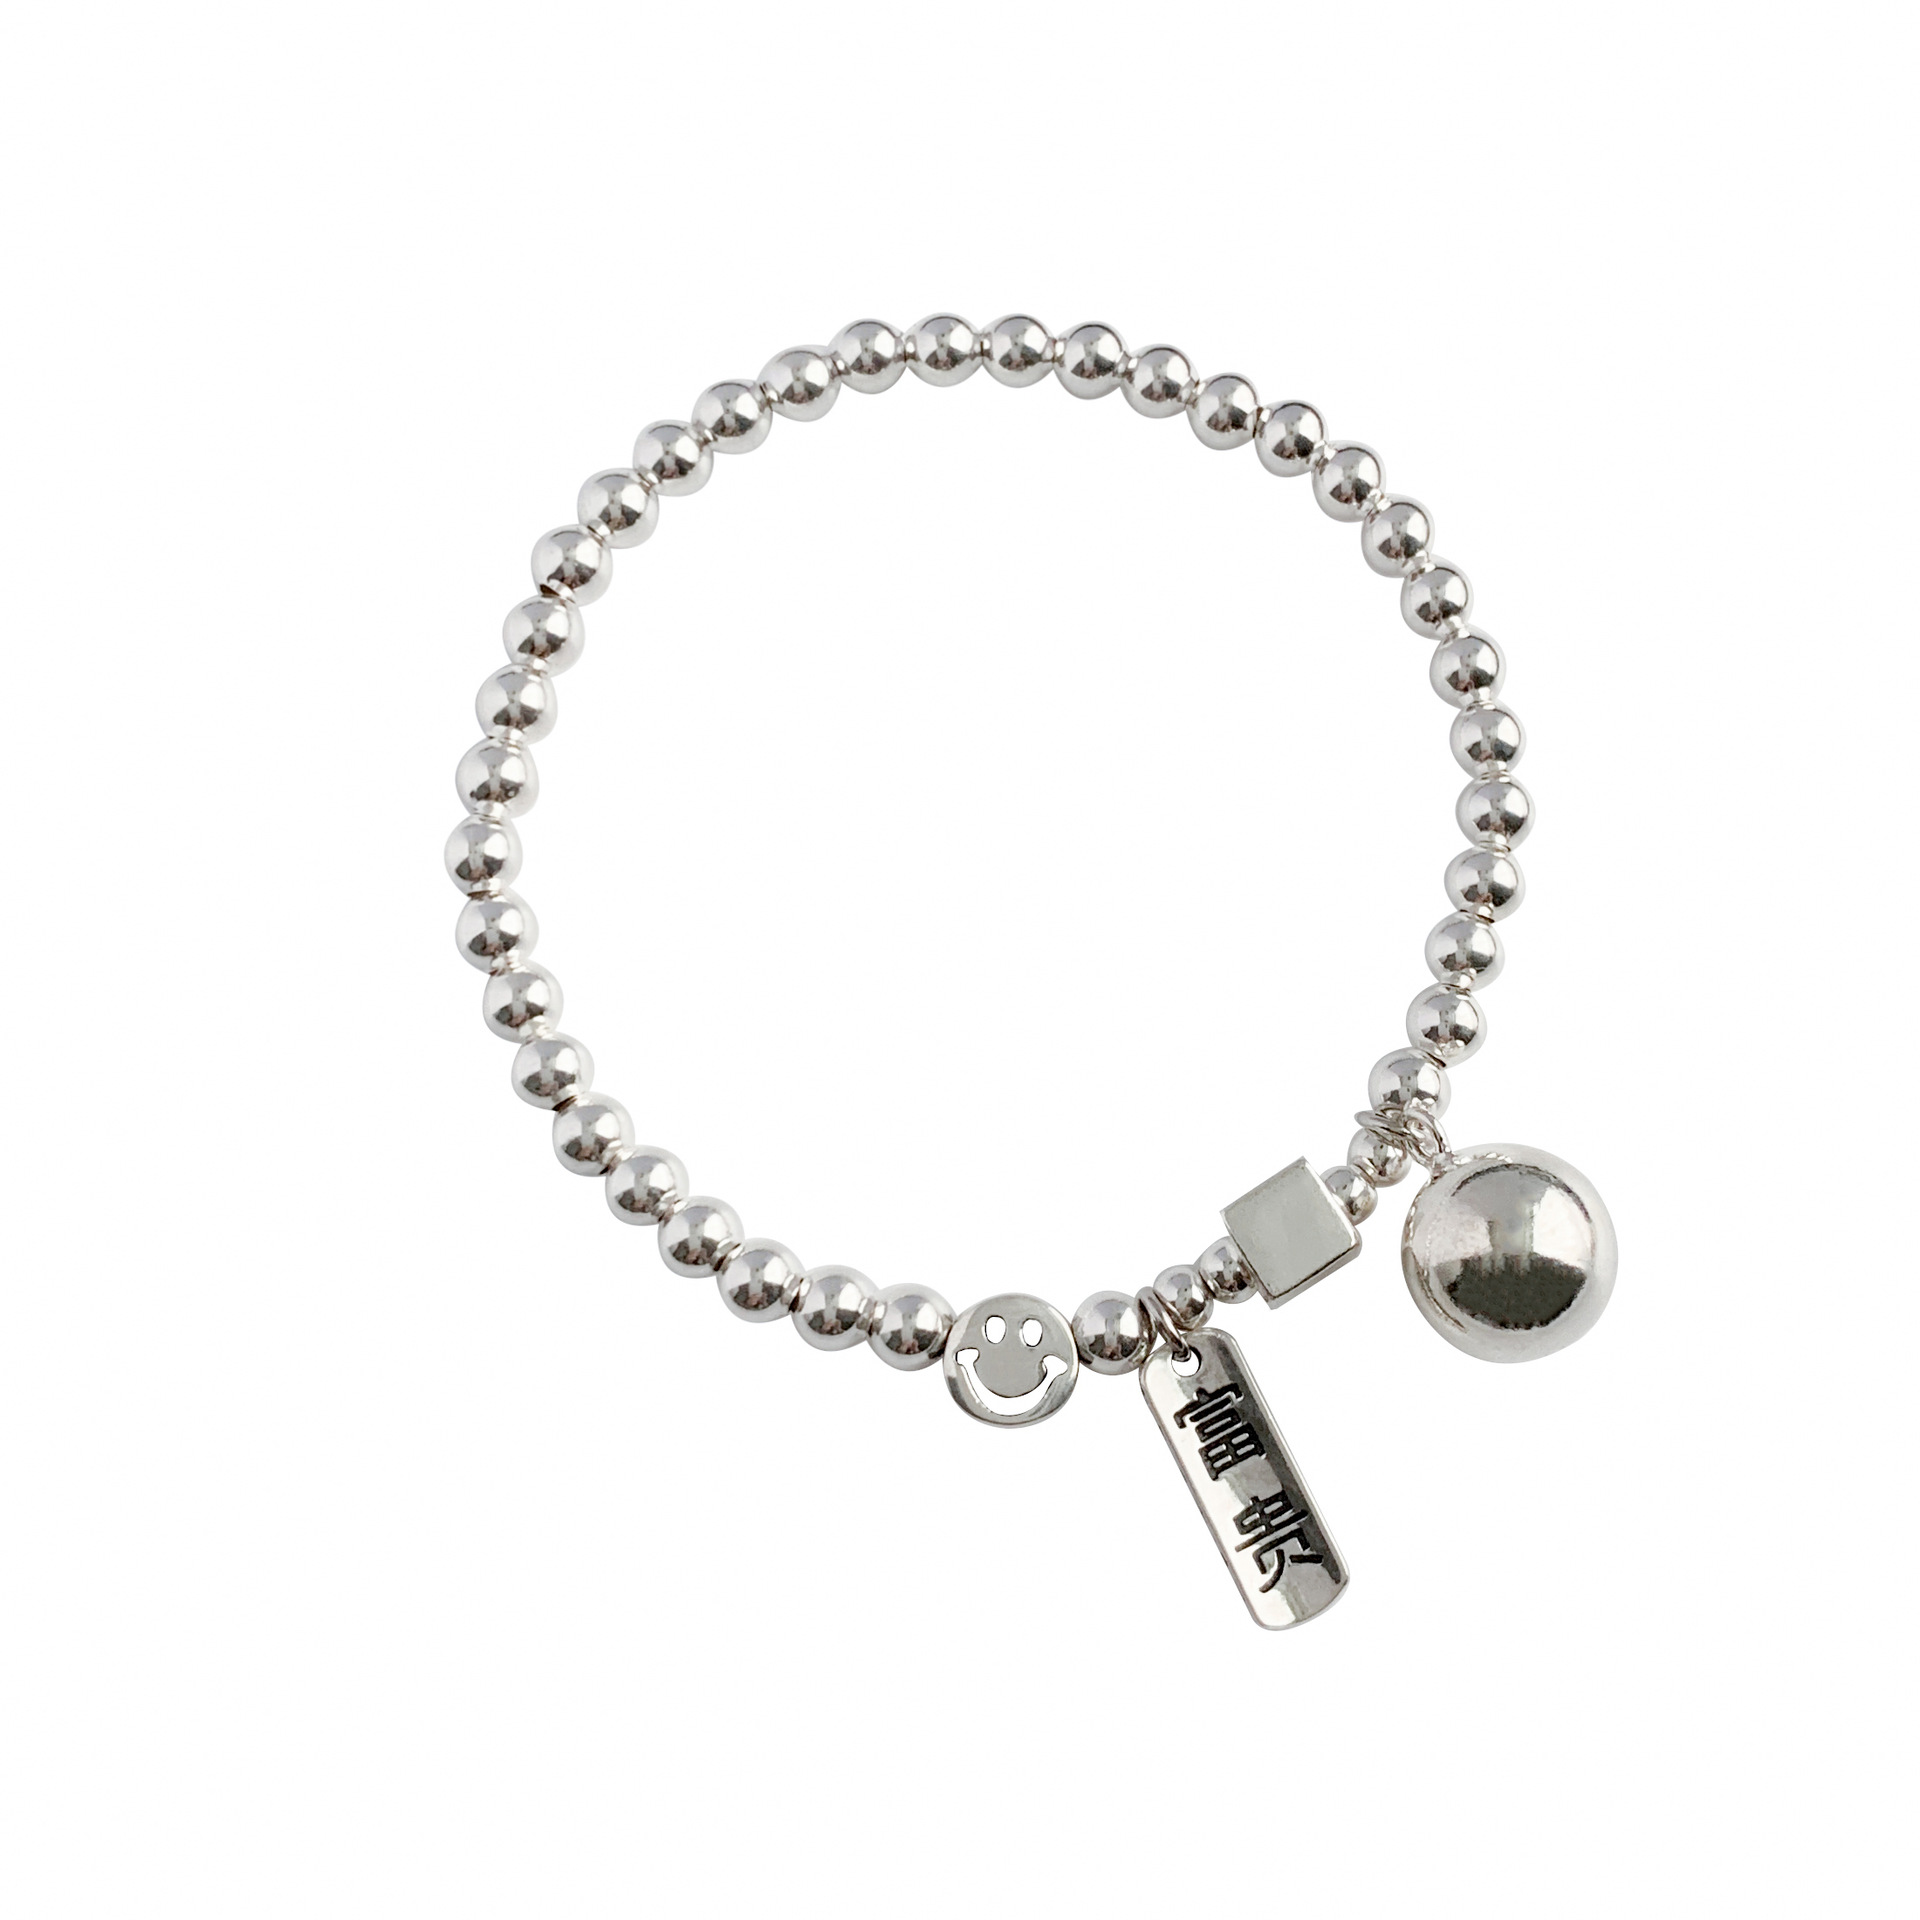 Vintage Round Sterling Silver Bead Bracelet for Lucky Charms